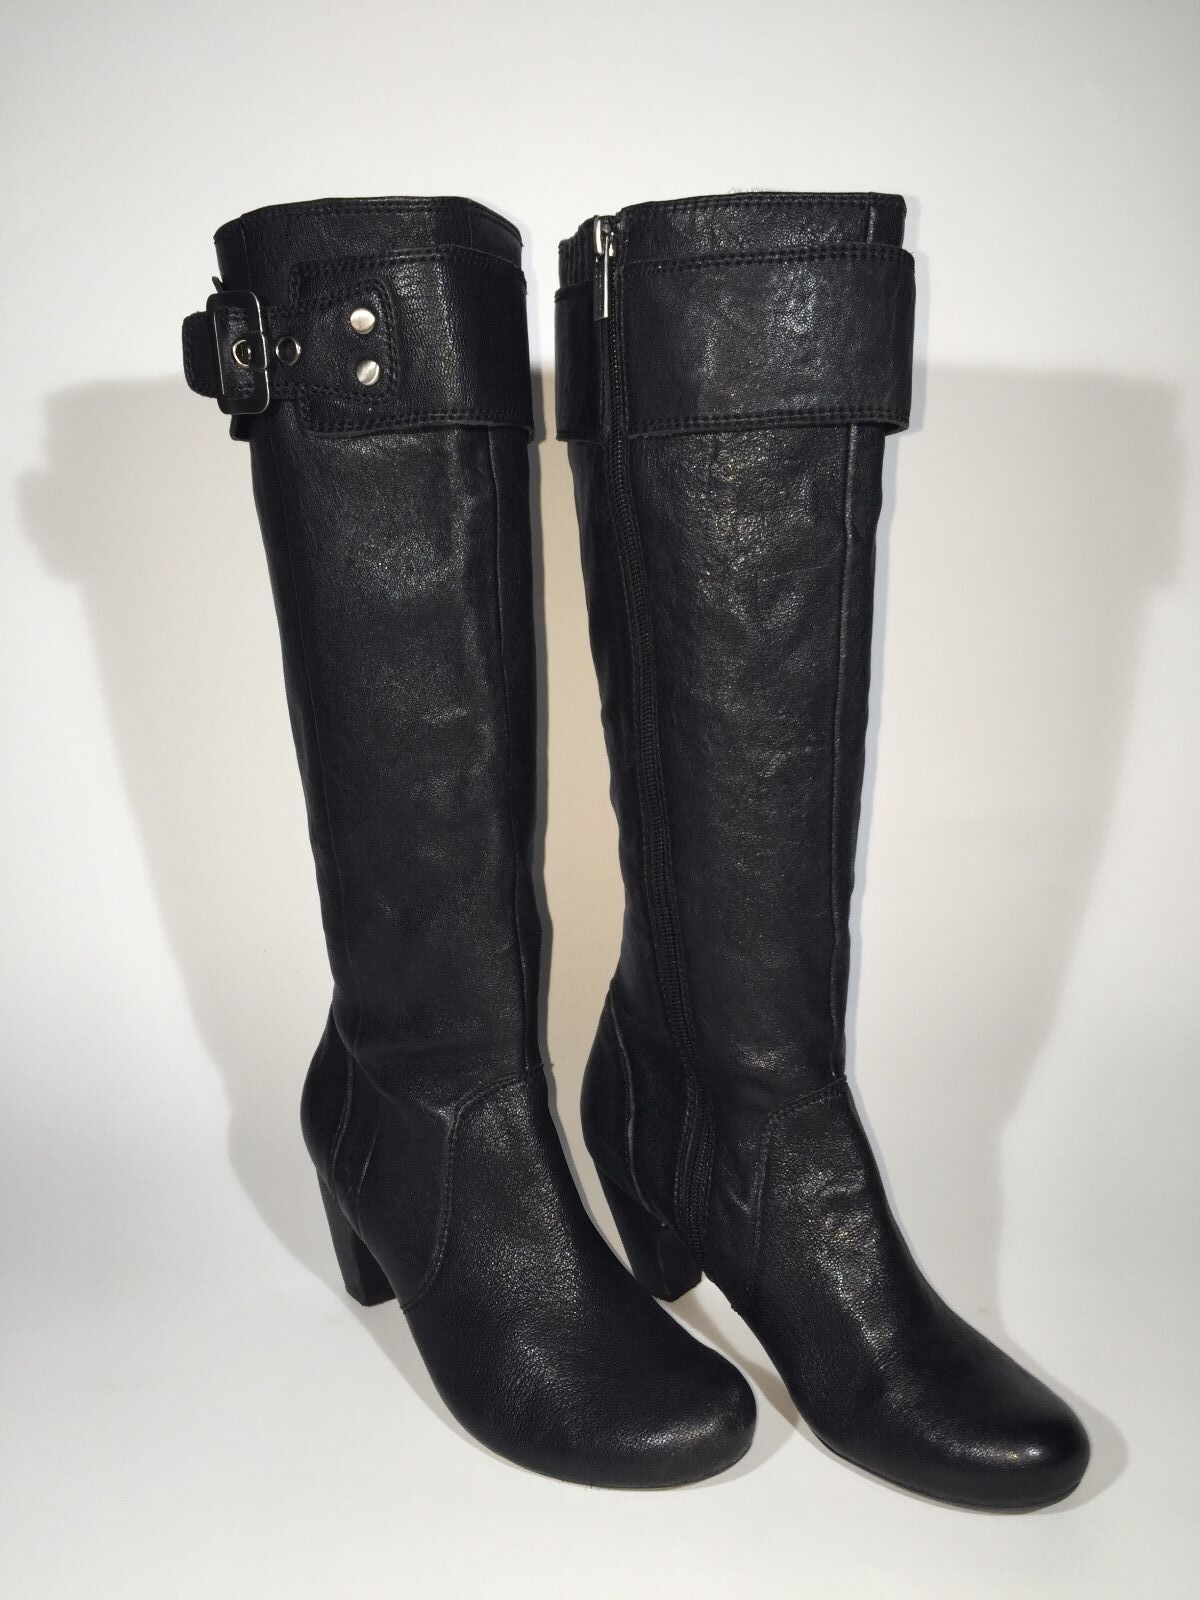 Kenneth Cole Reaction Boots Iconic Black Leather Knee-High Boots Size 7 M